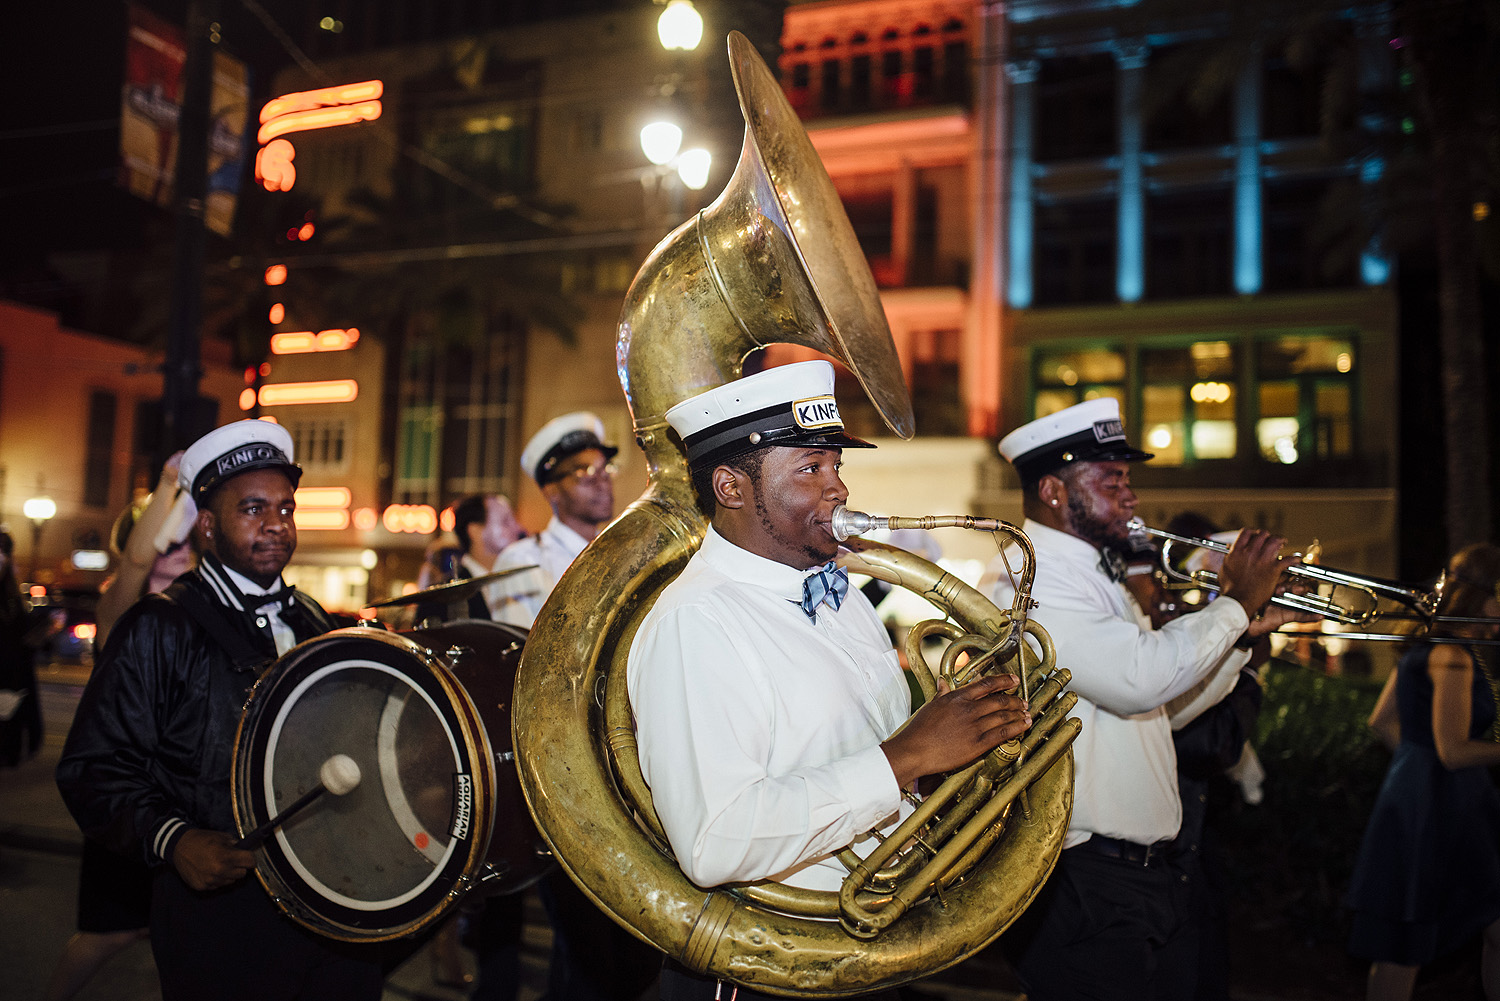 Kristin + James-Roosevelt-Hotel-New-Orleans-Wedding_Online_0421.jpg